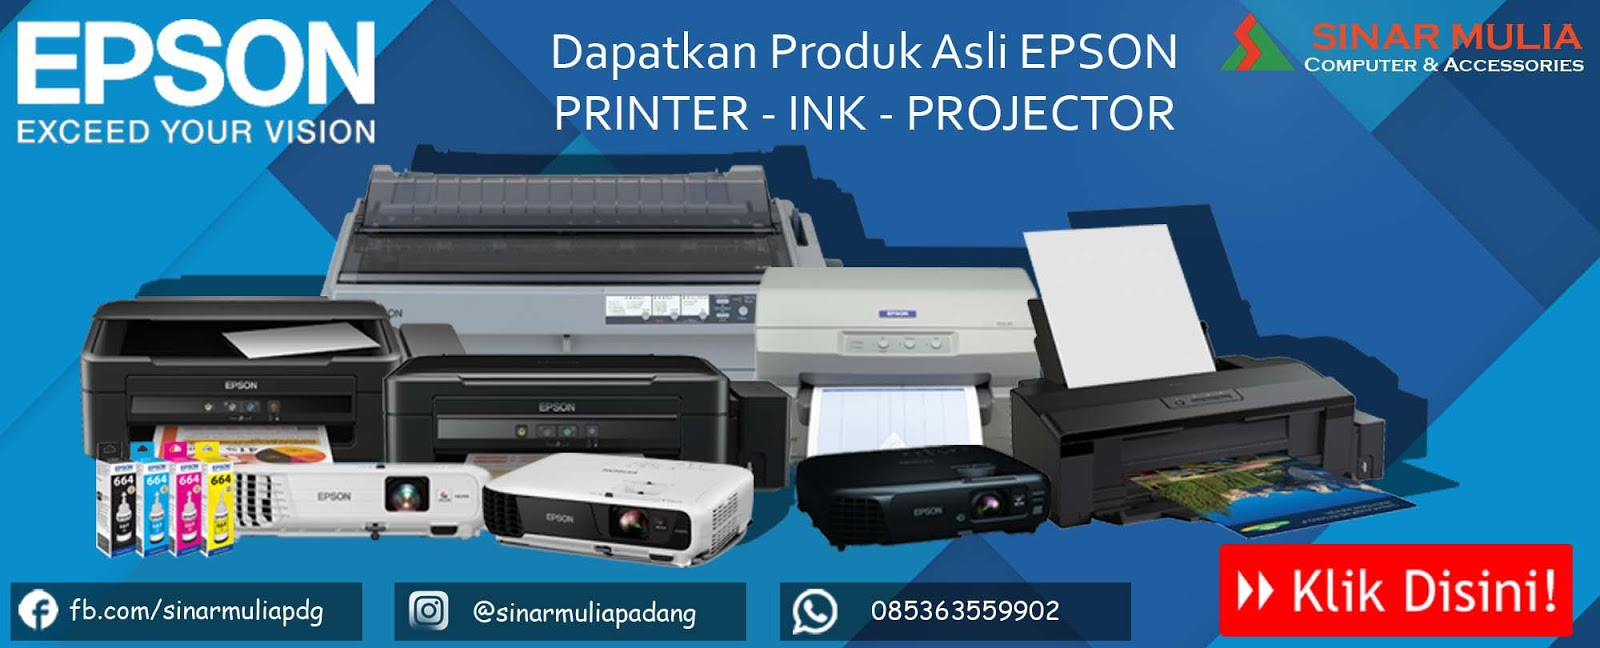 Sinar Mulia Padang Computer Accessories Hp Notebook 14 Am127tx Latest Product